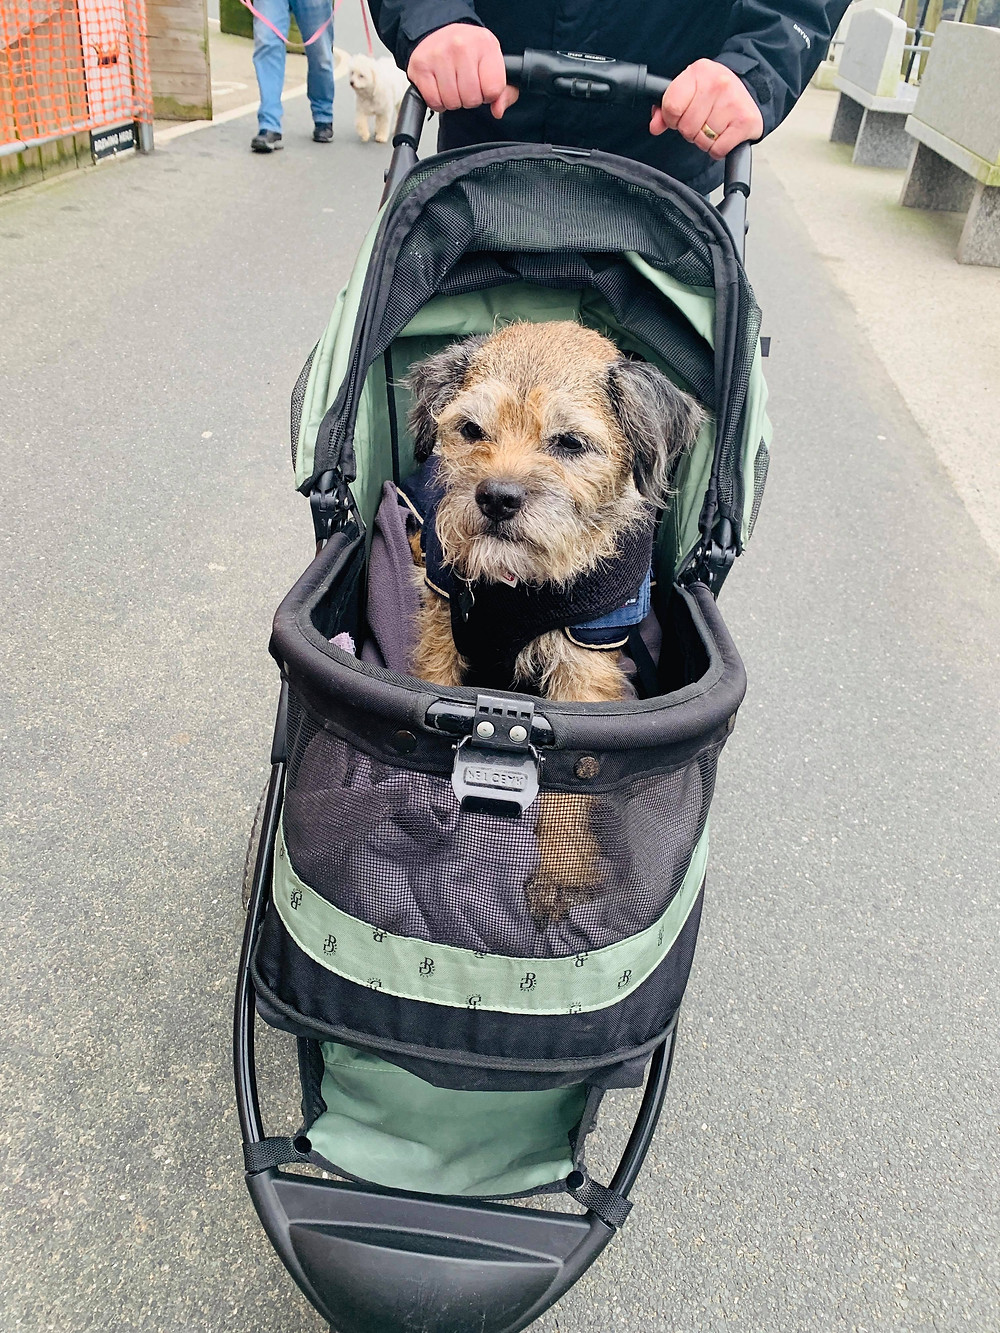 Barney to border terrier sat in his dog buggy, being pushed